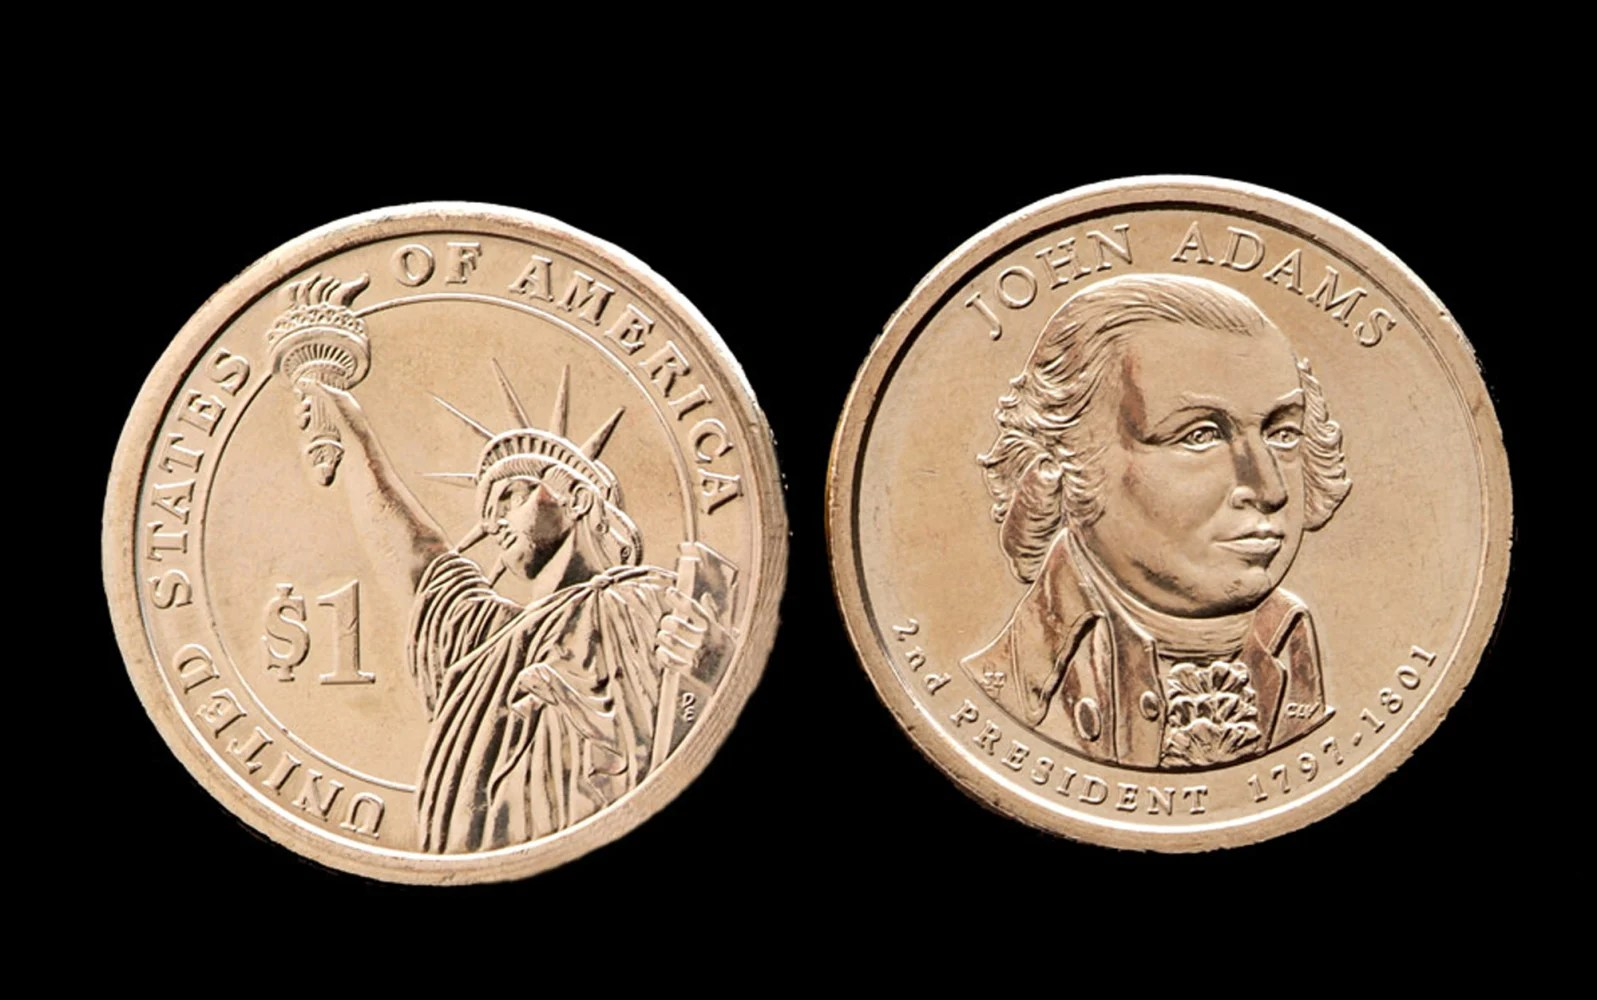 Lawmakers Again Propose Replacing 1 Bills With Coins